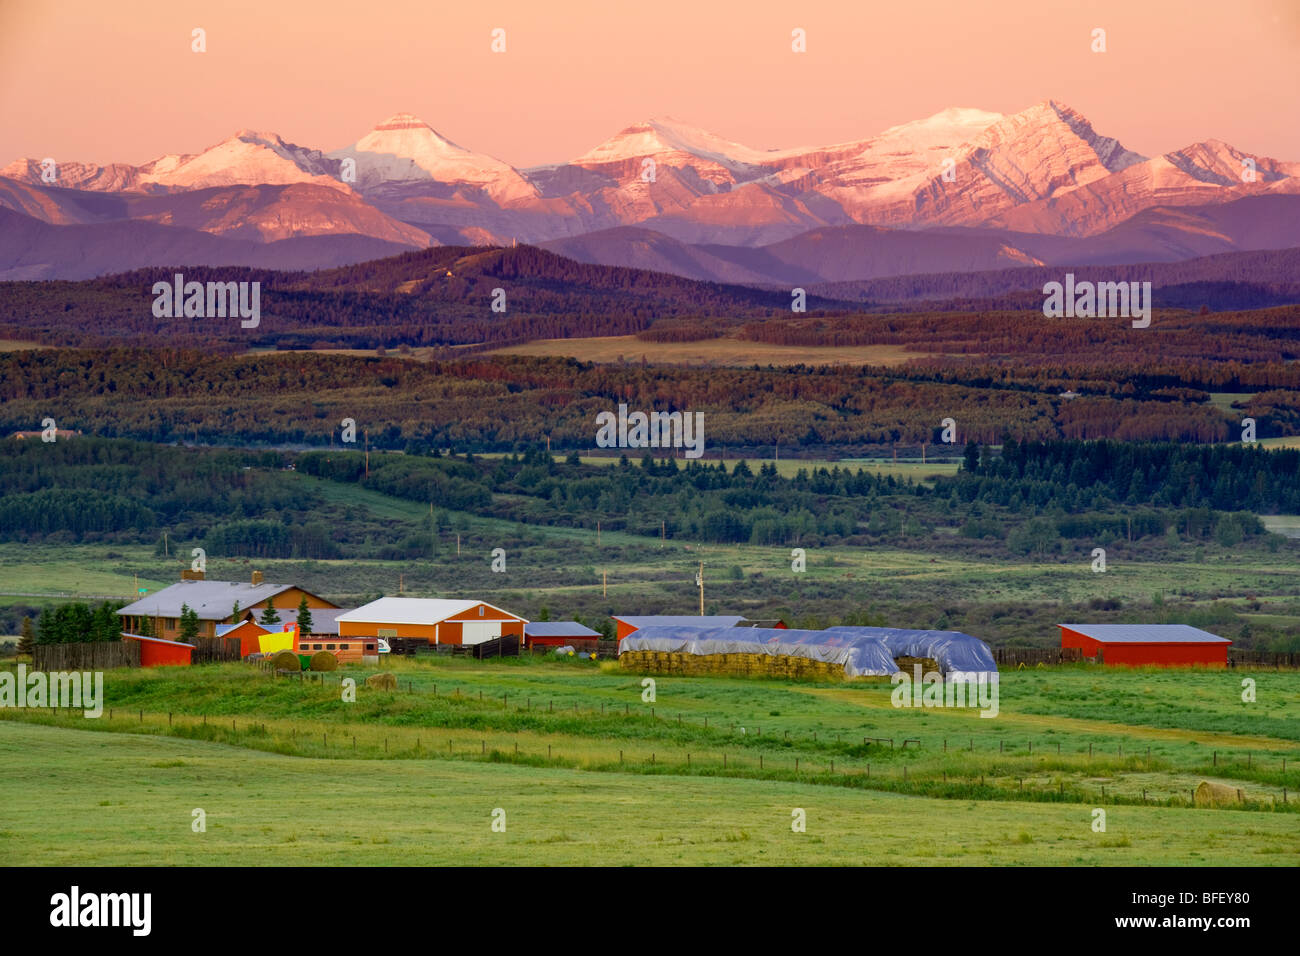 foothills Ranch in early morning light, Cochrane, Alberta, Canada, agriculture, mountains, rockies - Stock Image